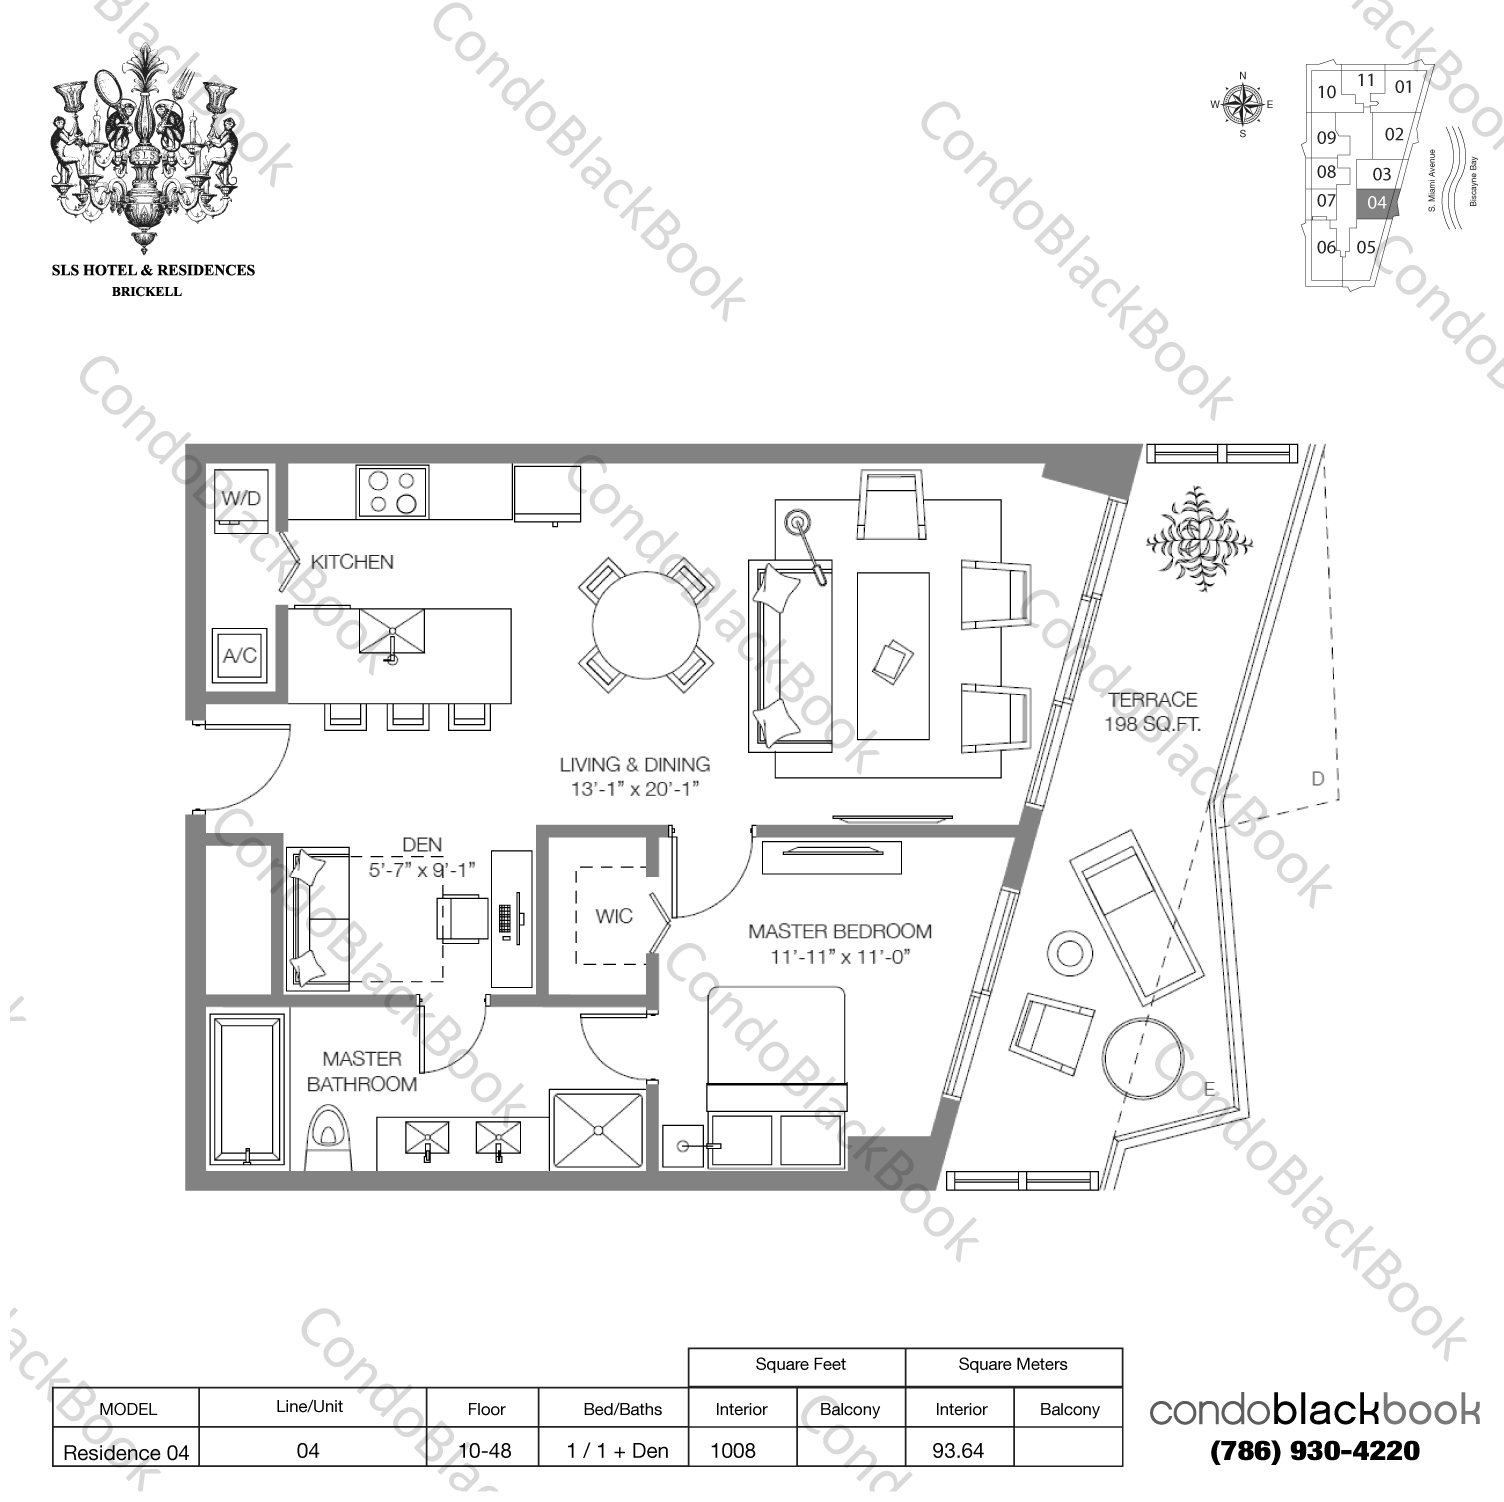 Floor plan for SLS Hotel & Residences Brickell Miami, model RESIDENCE 04, line 04, 1/1+Den bedrooms, 1,008 sq ft